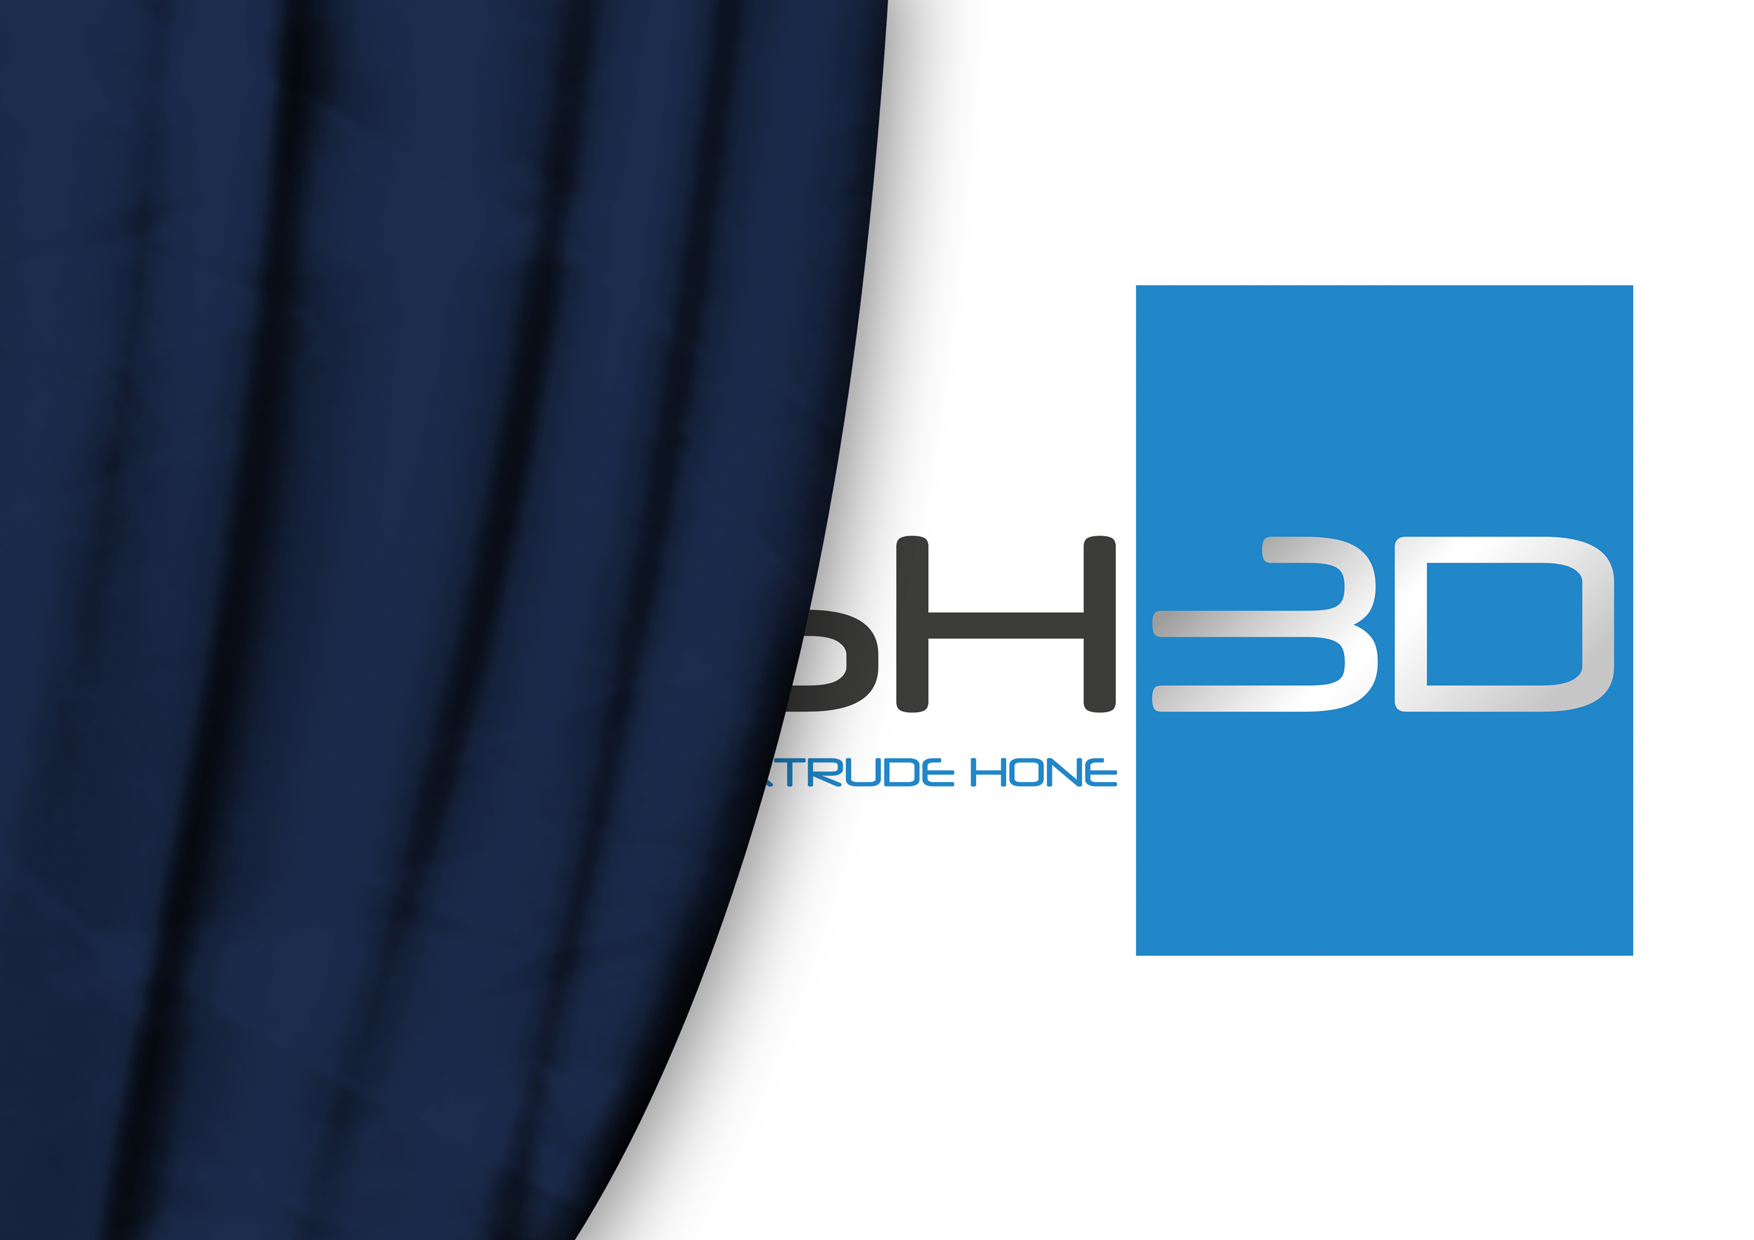 Finish 3D- Extrude Hone Reveal